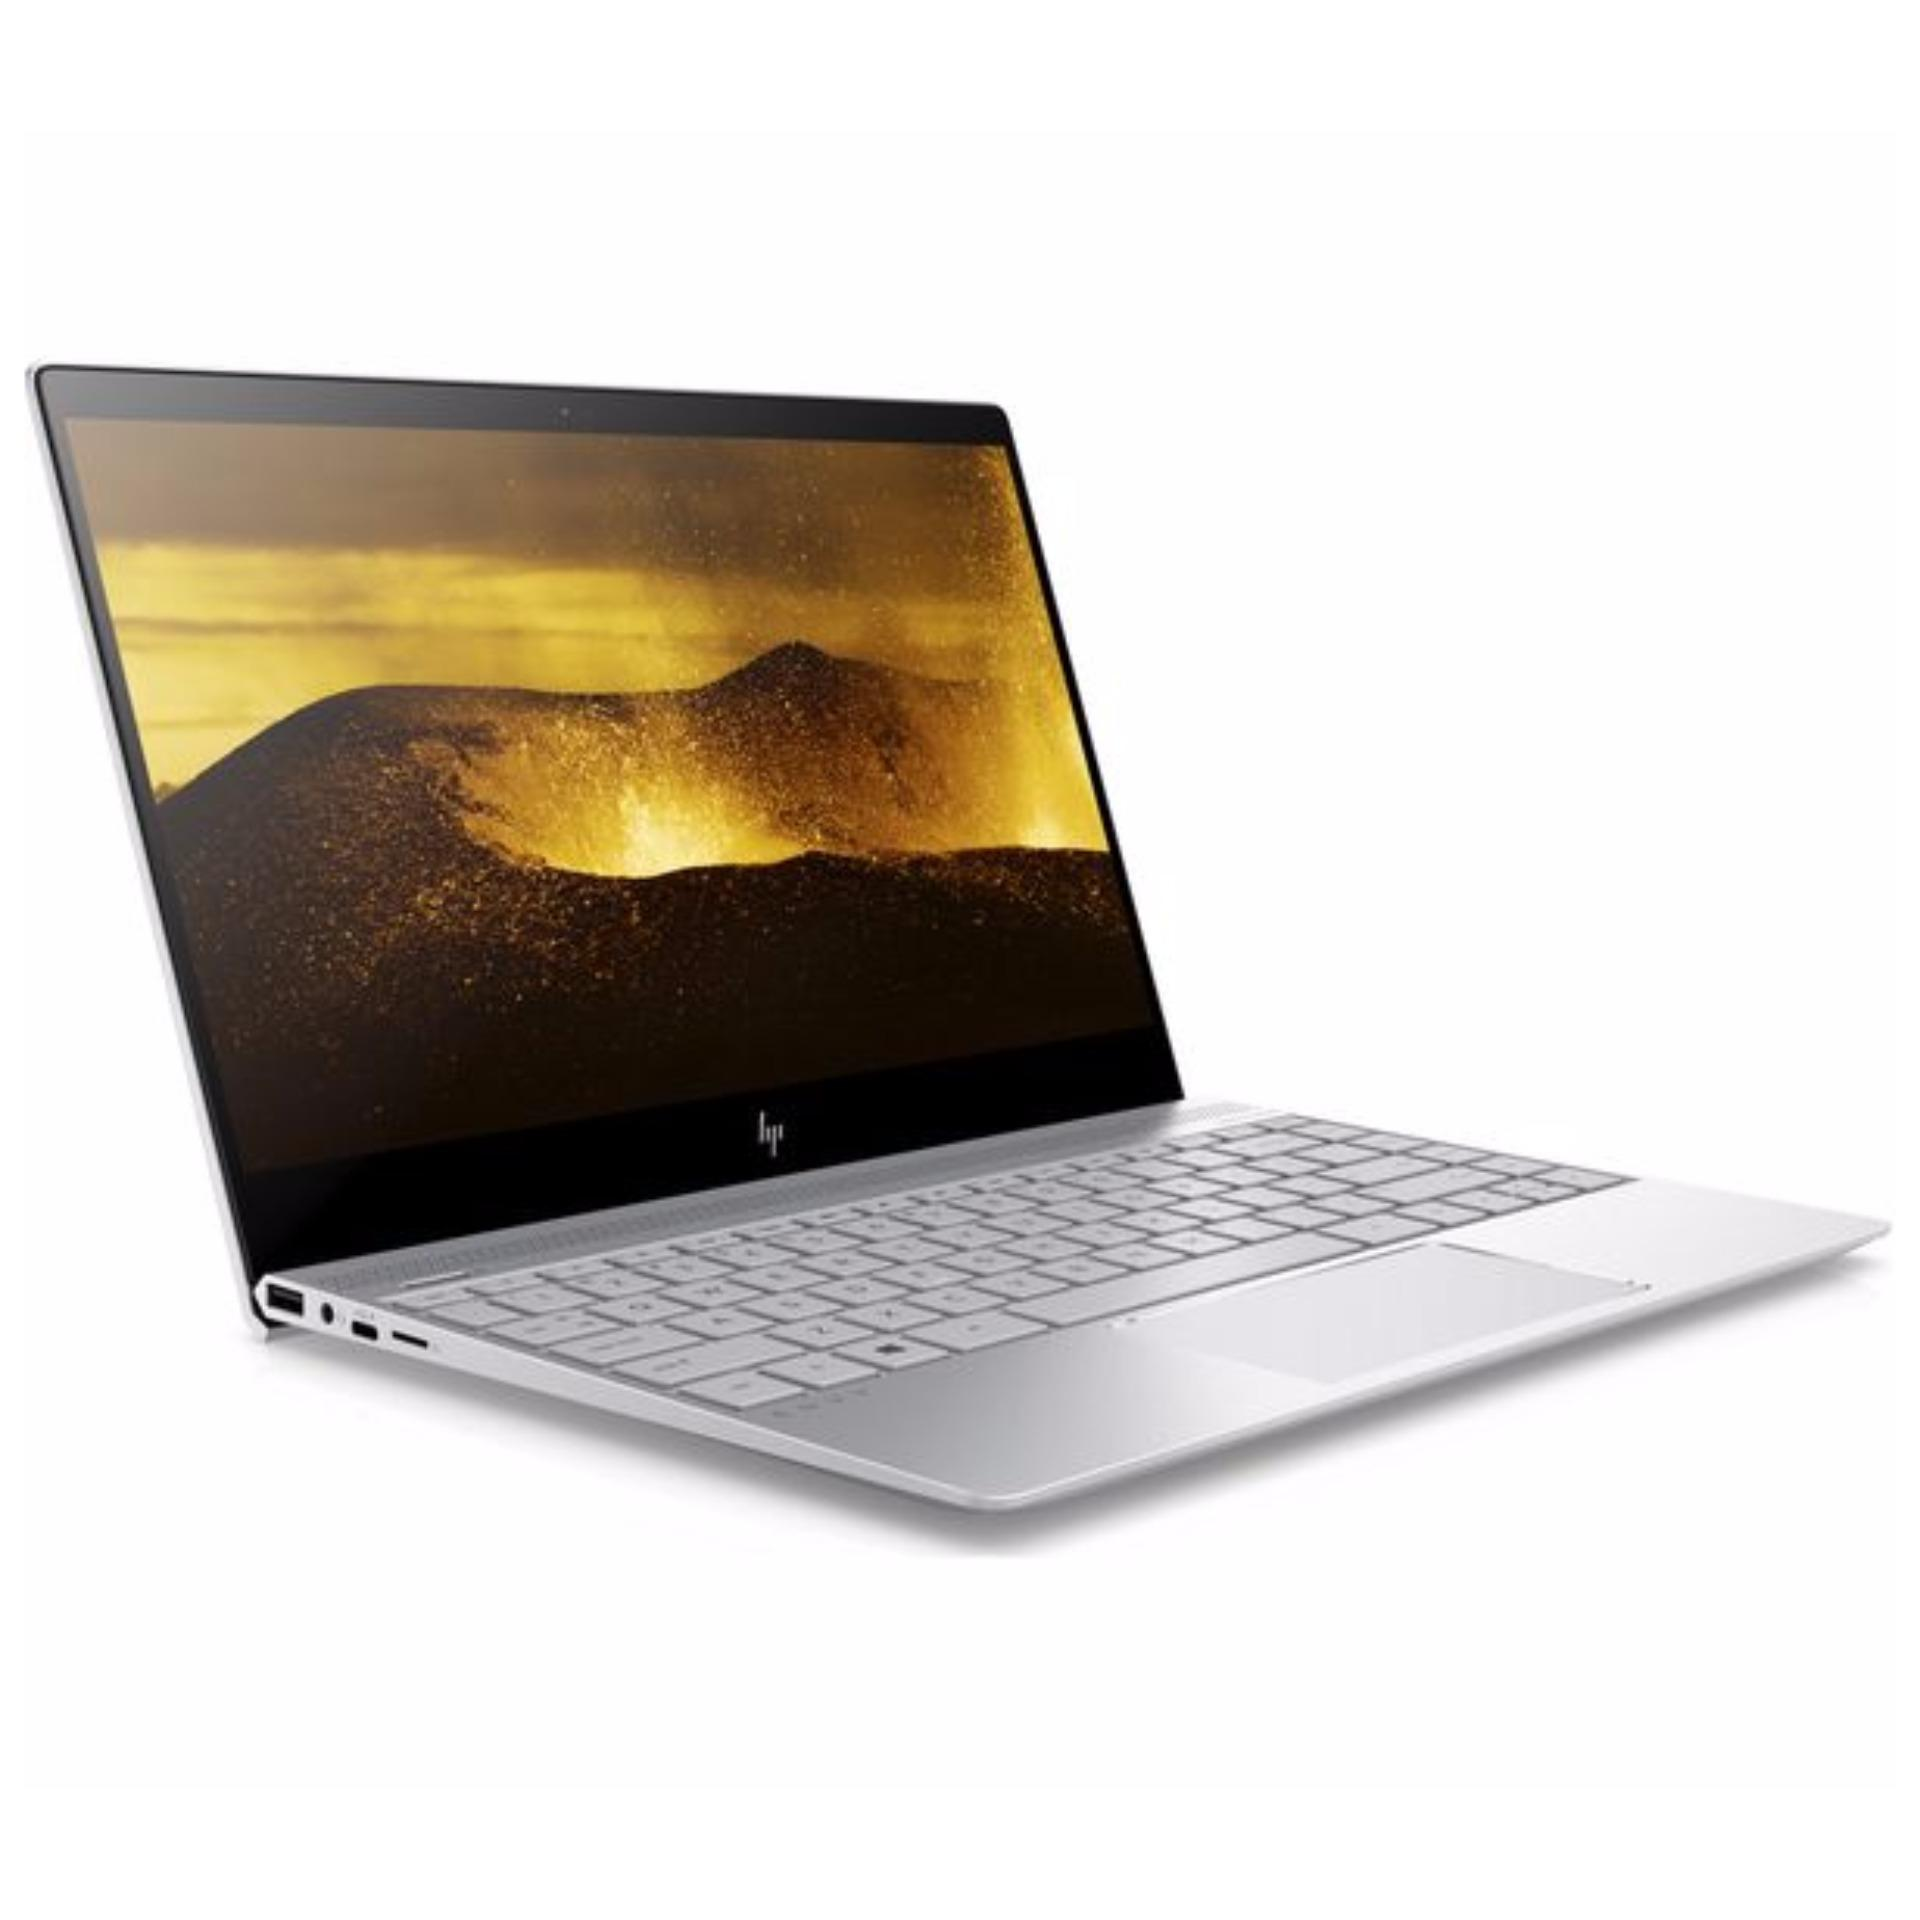 HP ENVY13 AD116TU i5-8250U Windows 10 Home 64 13.3